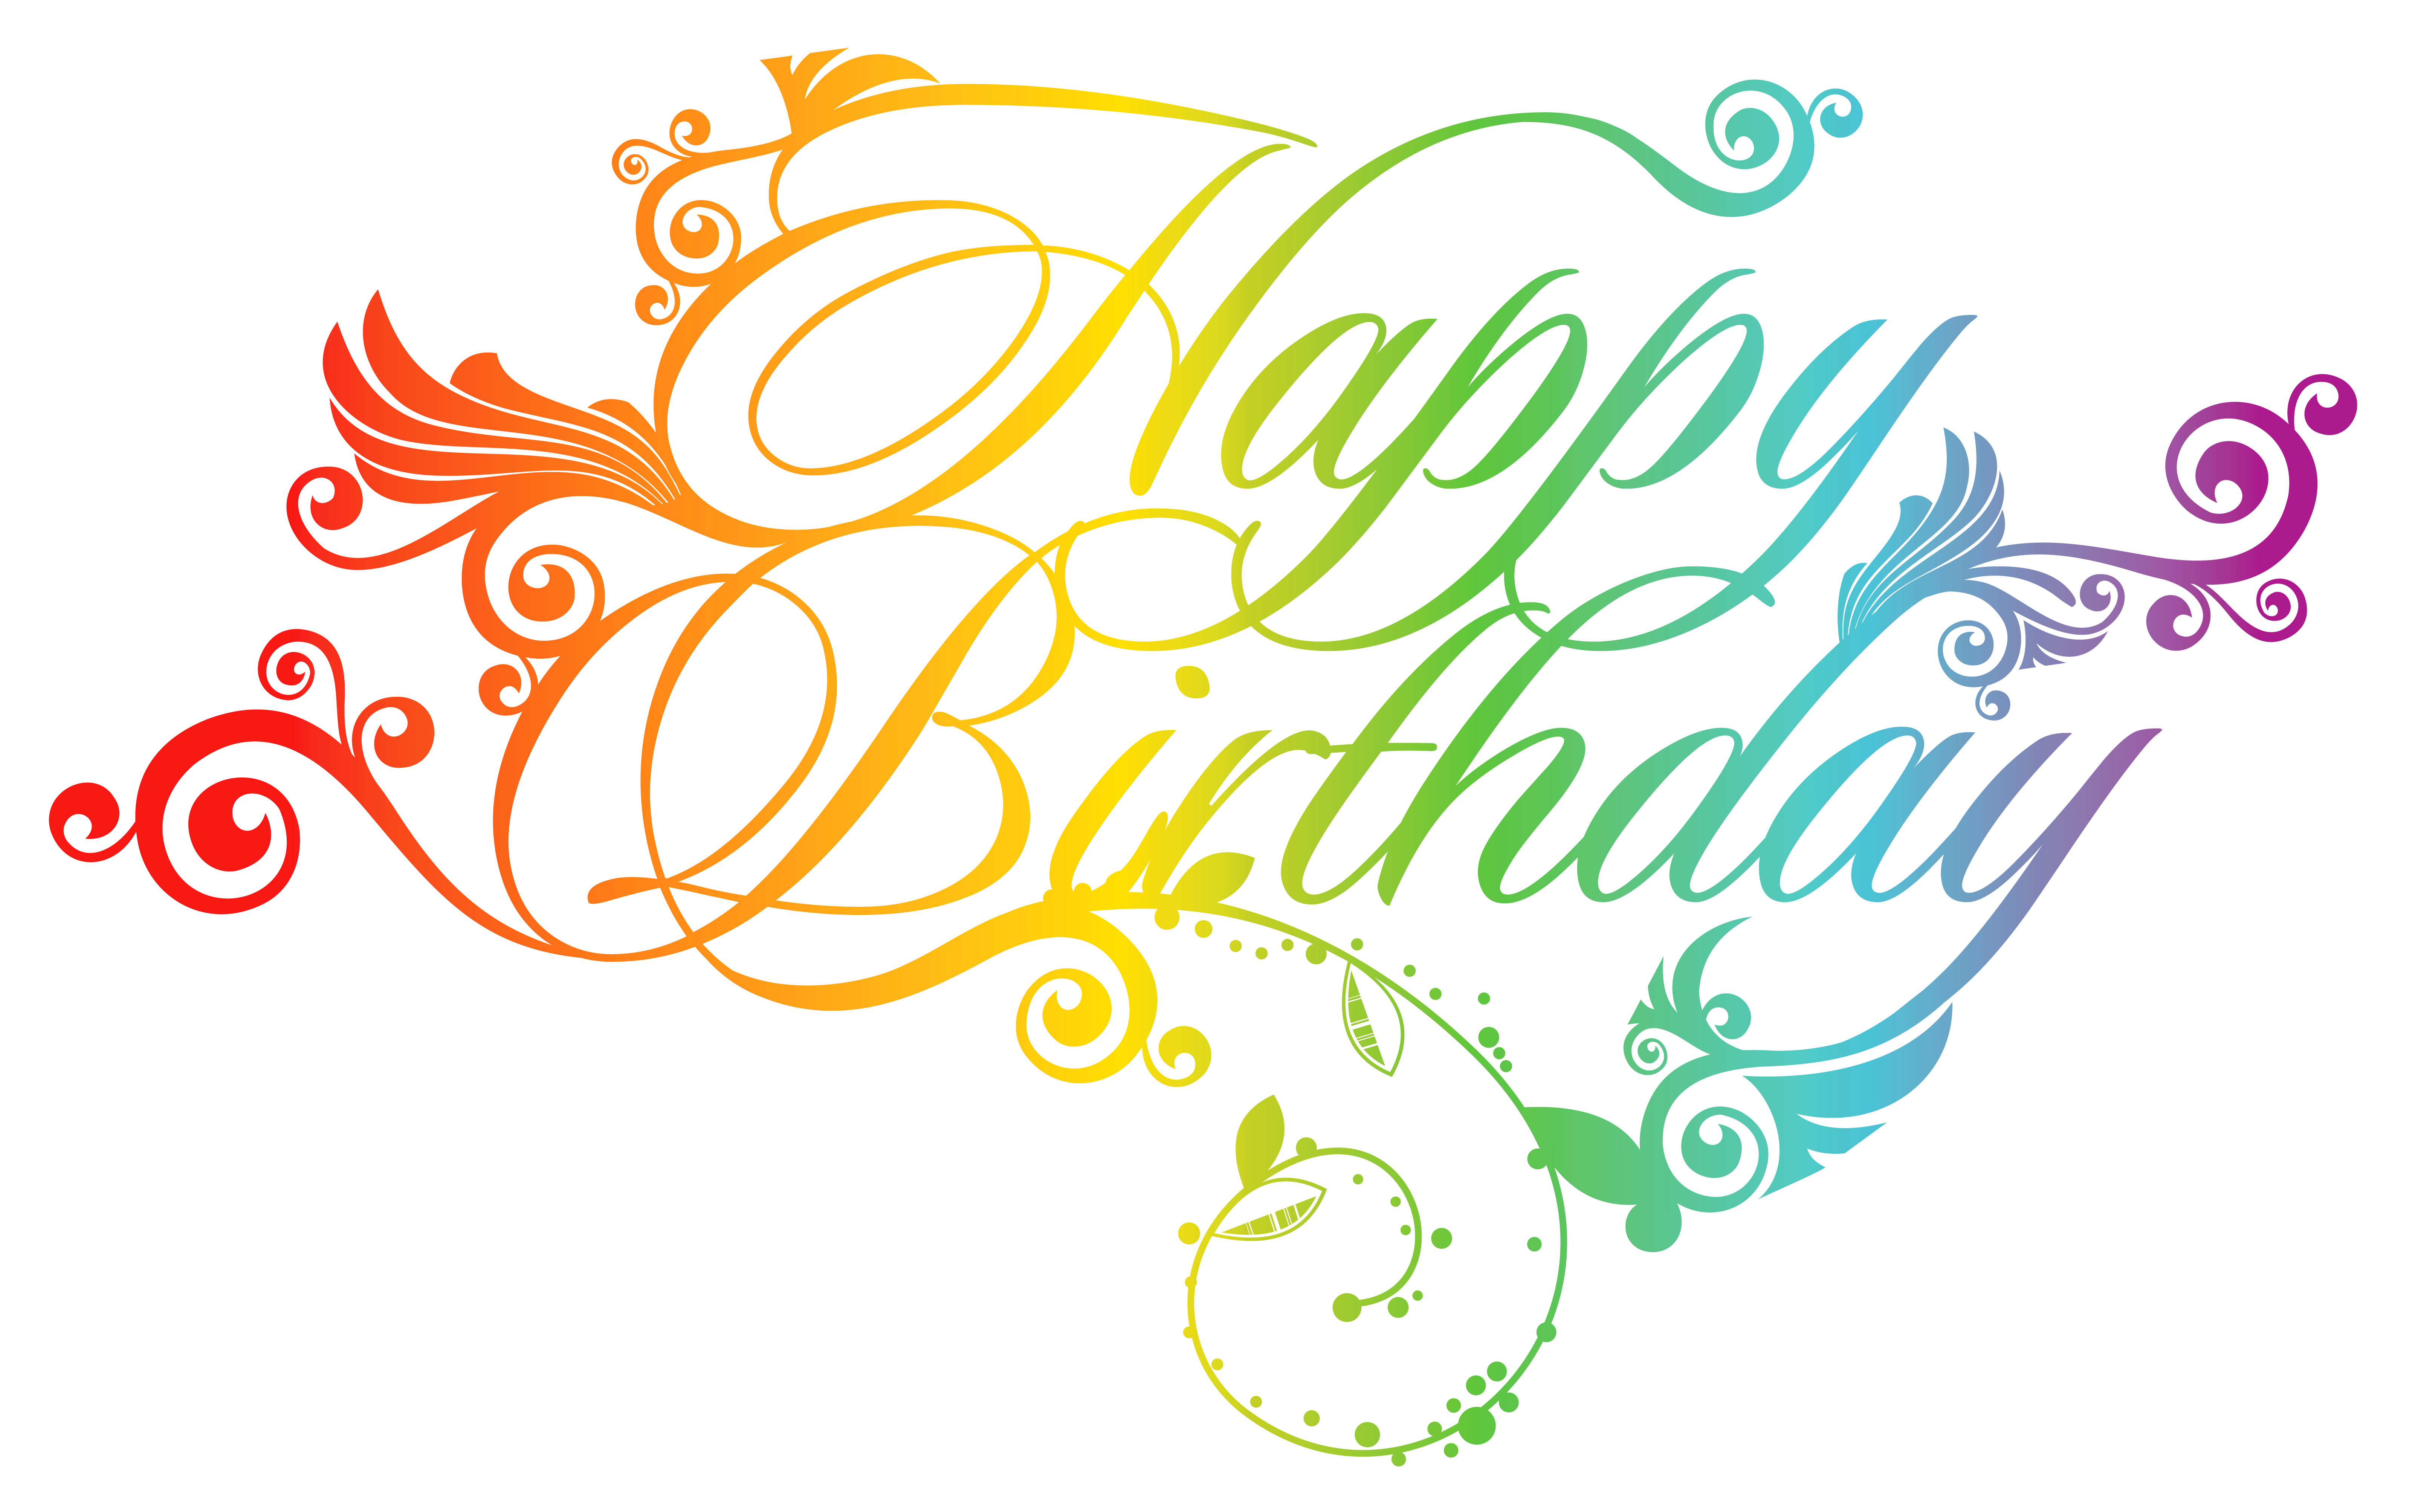 Happy birthday vintage png. Colorful clipart picture gallery